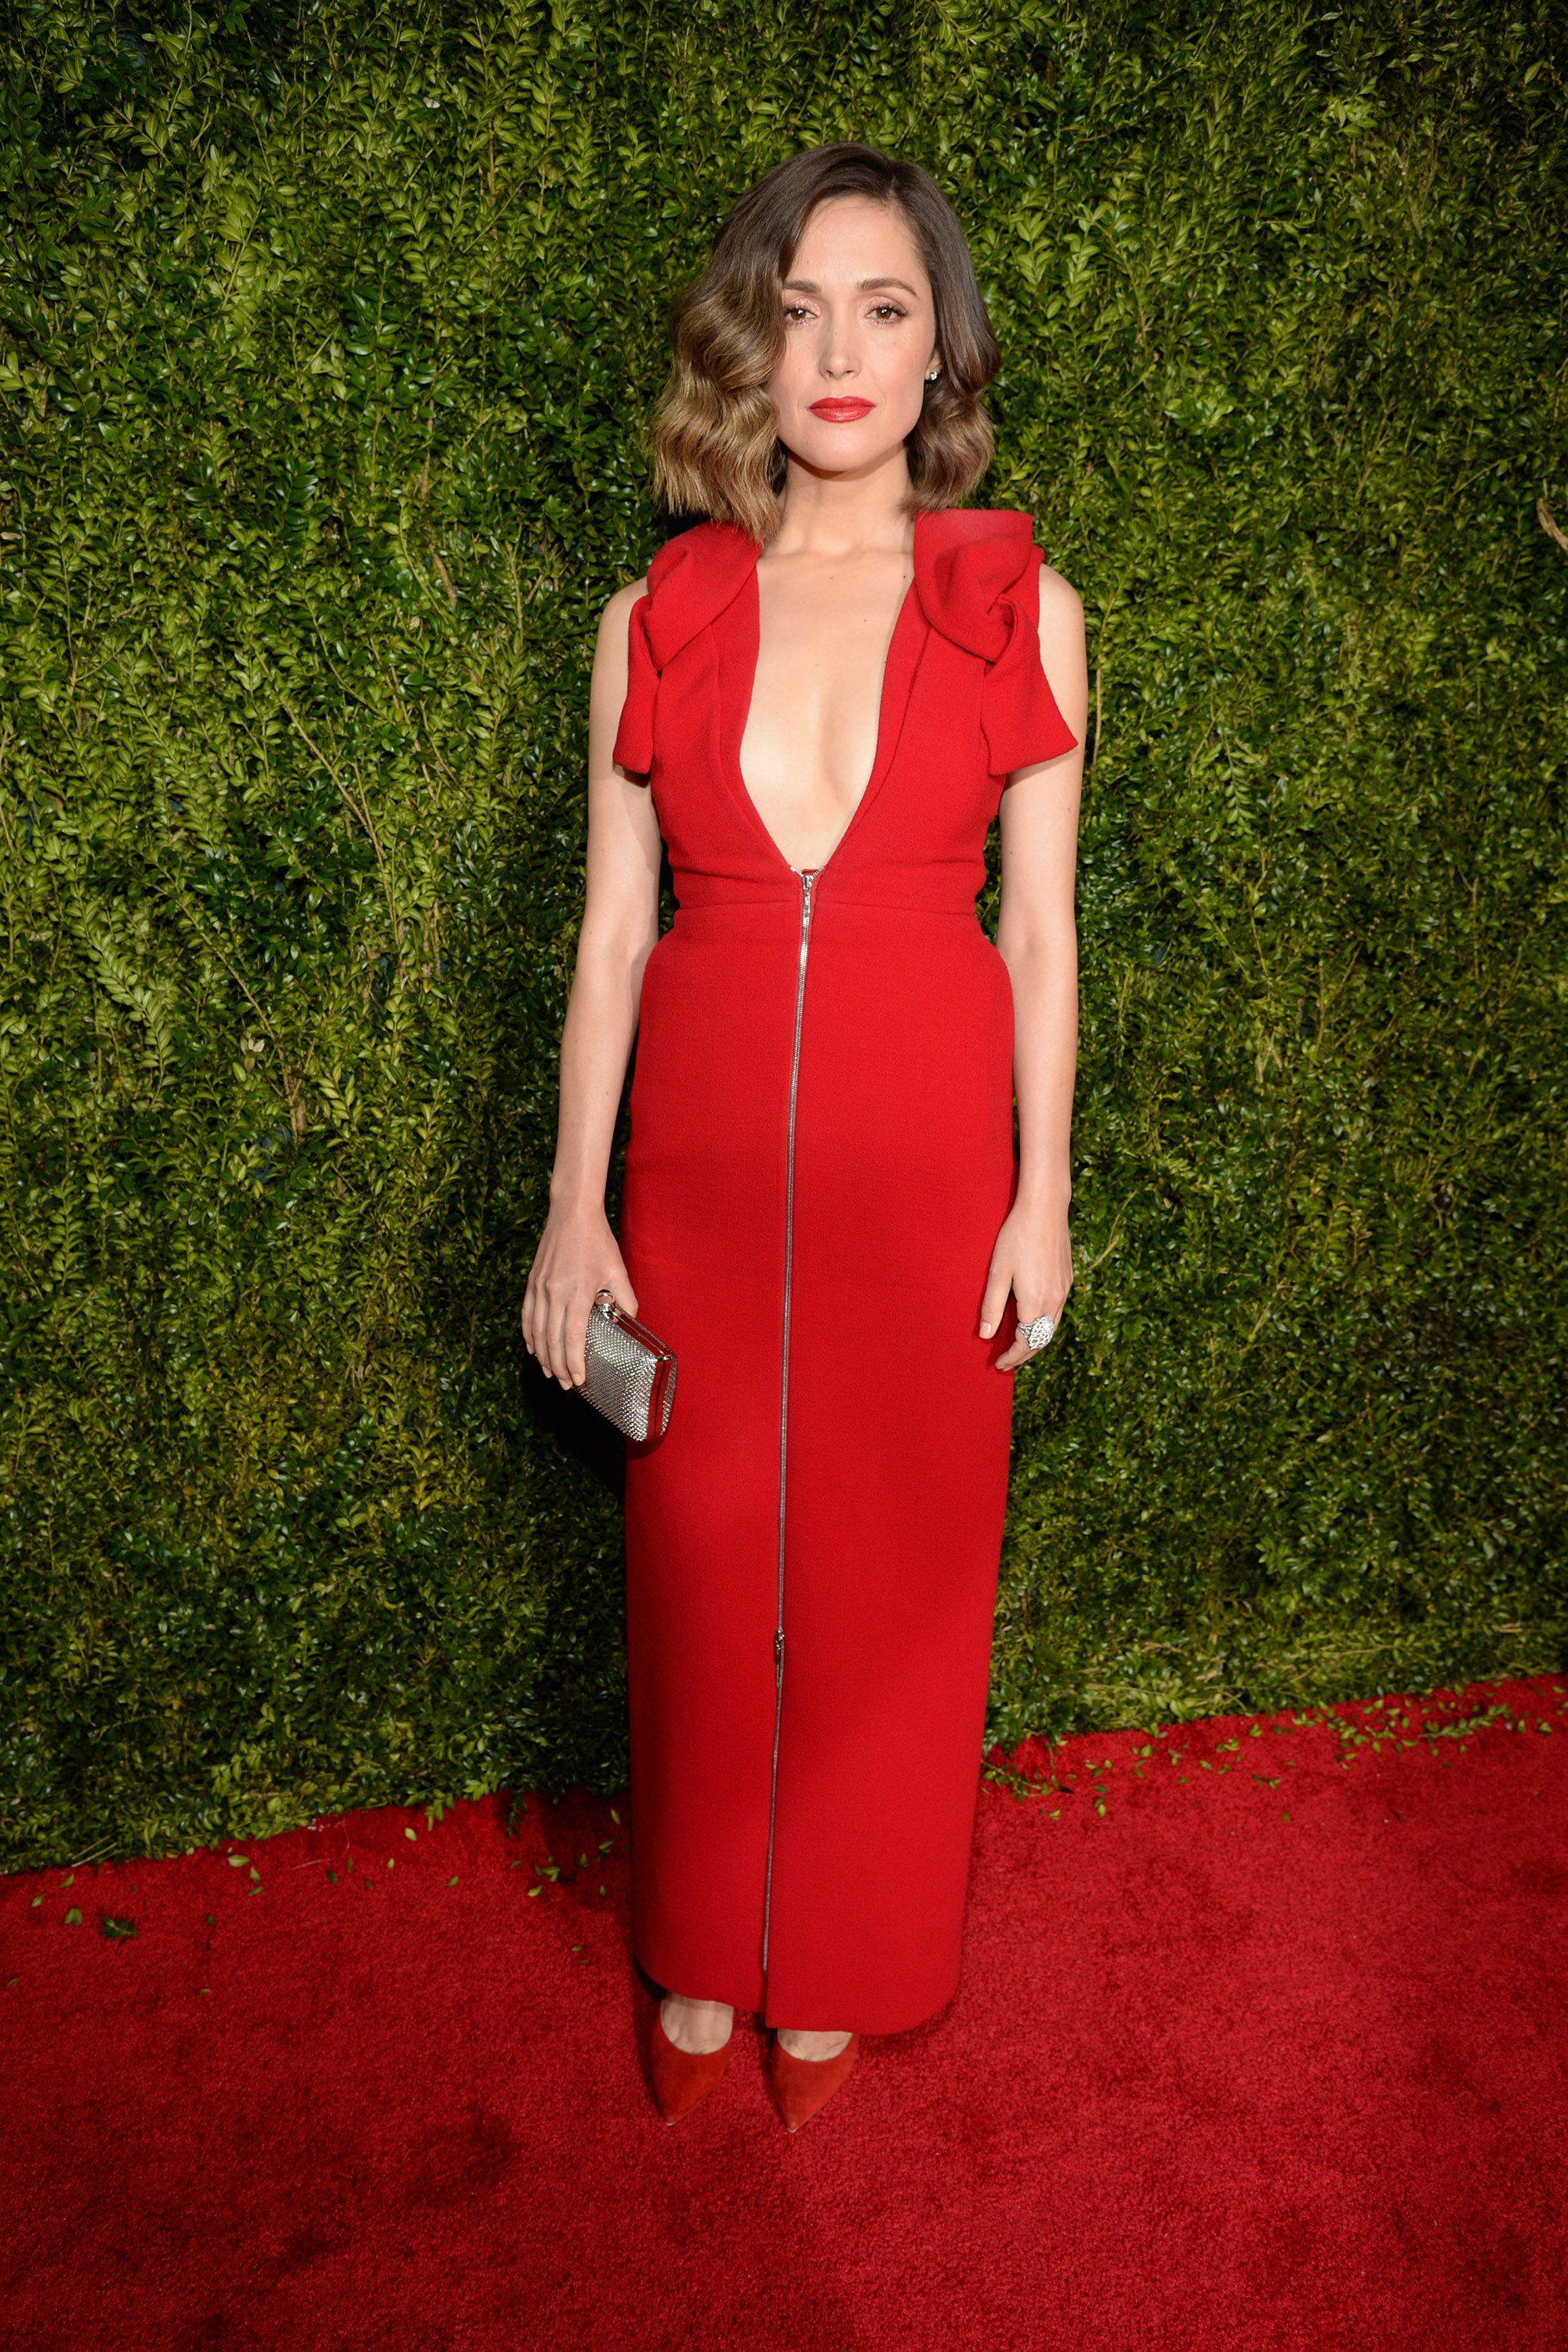 NEW YORK, NY - JUNE 07:  Rose Byrne attends the 2015 Tony Awards at Radio City Music Hall on June 7, 2015 in New York City.  (Photo by Kevin Mazur/Getty Images for Tony Awards Productions)